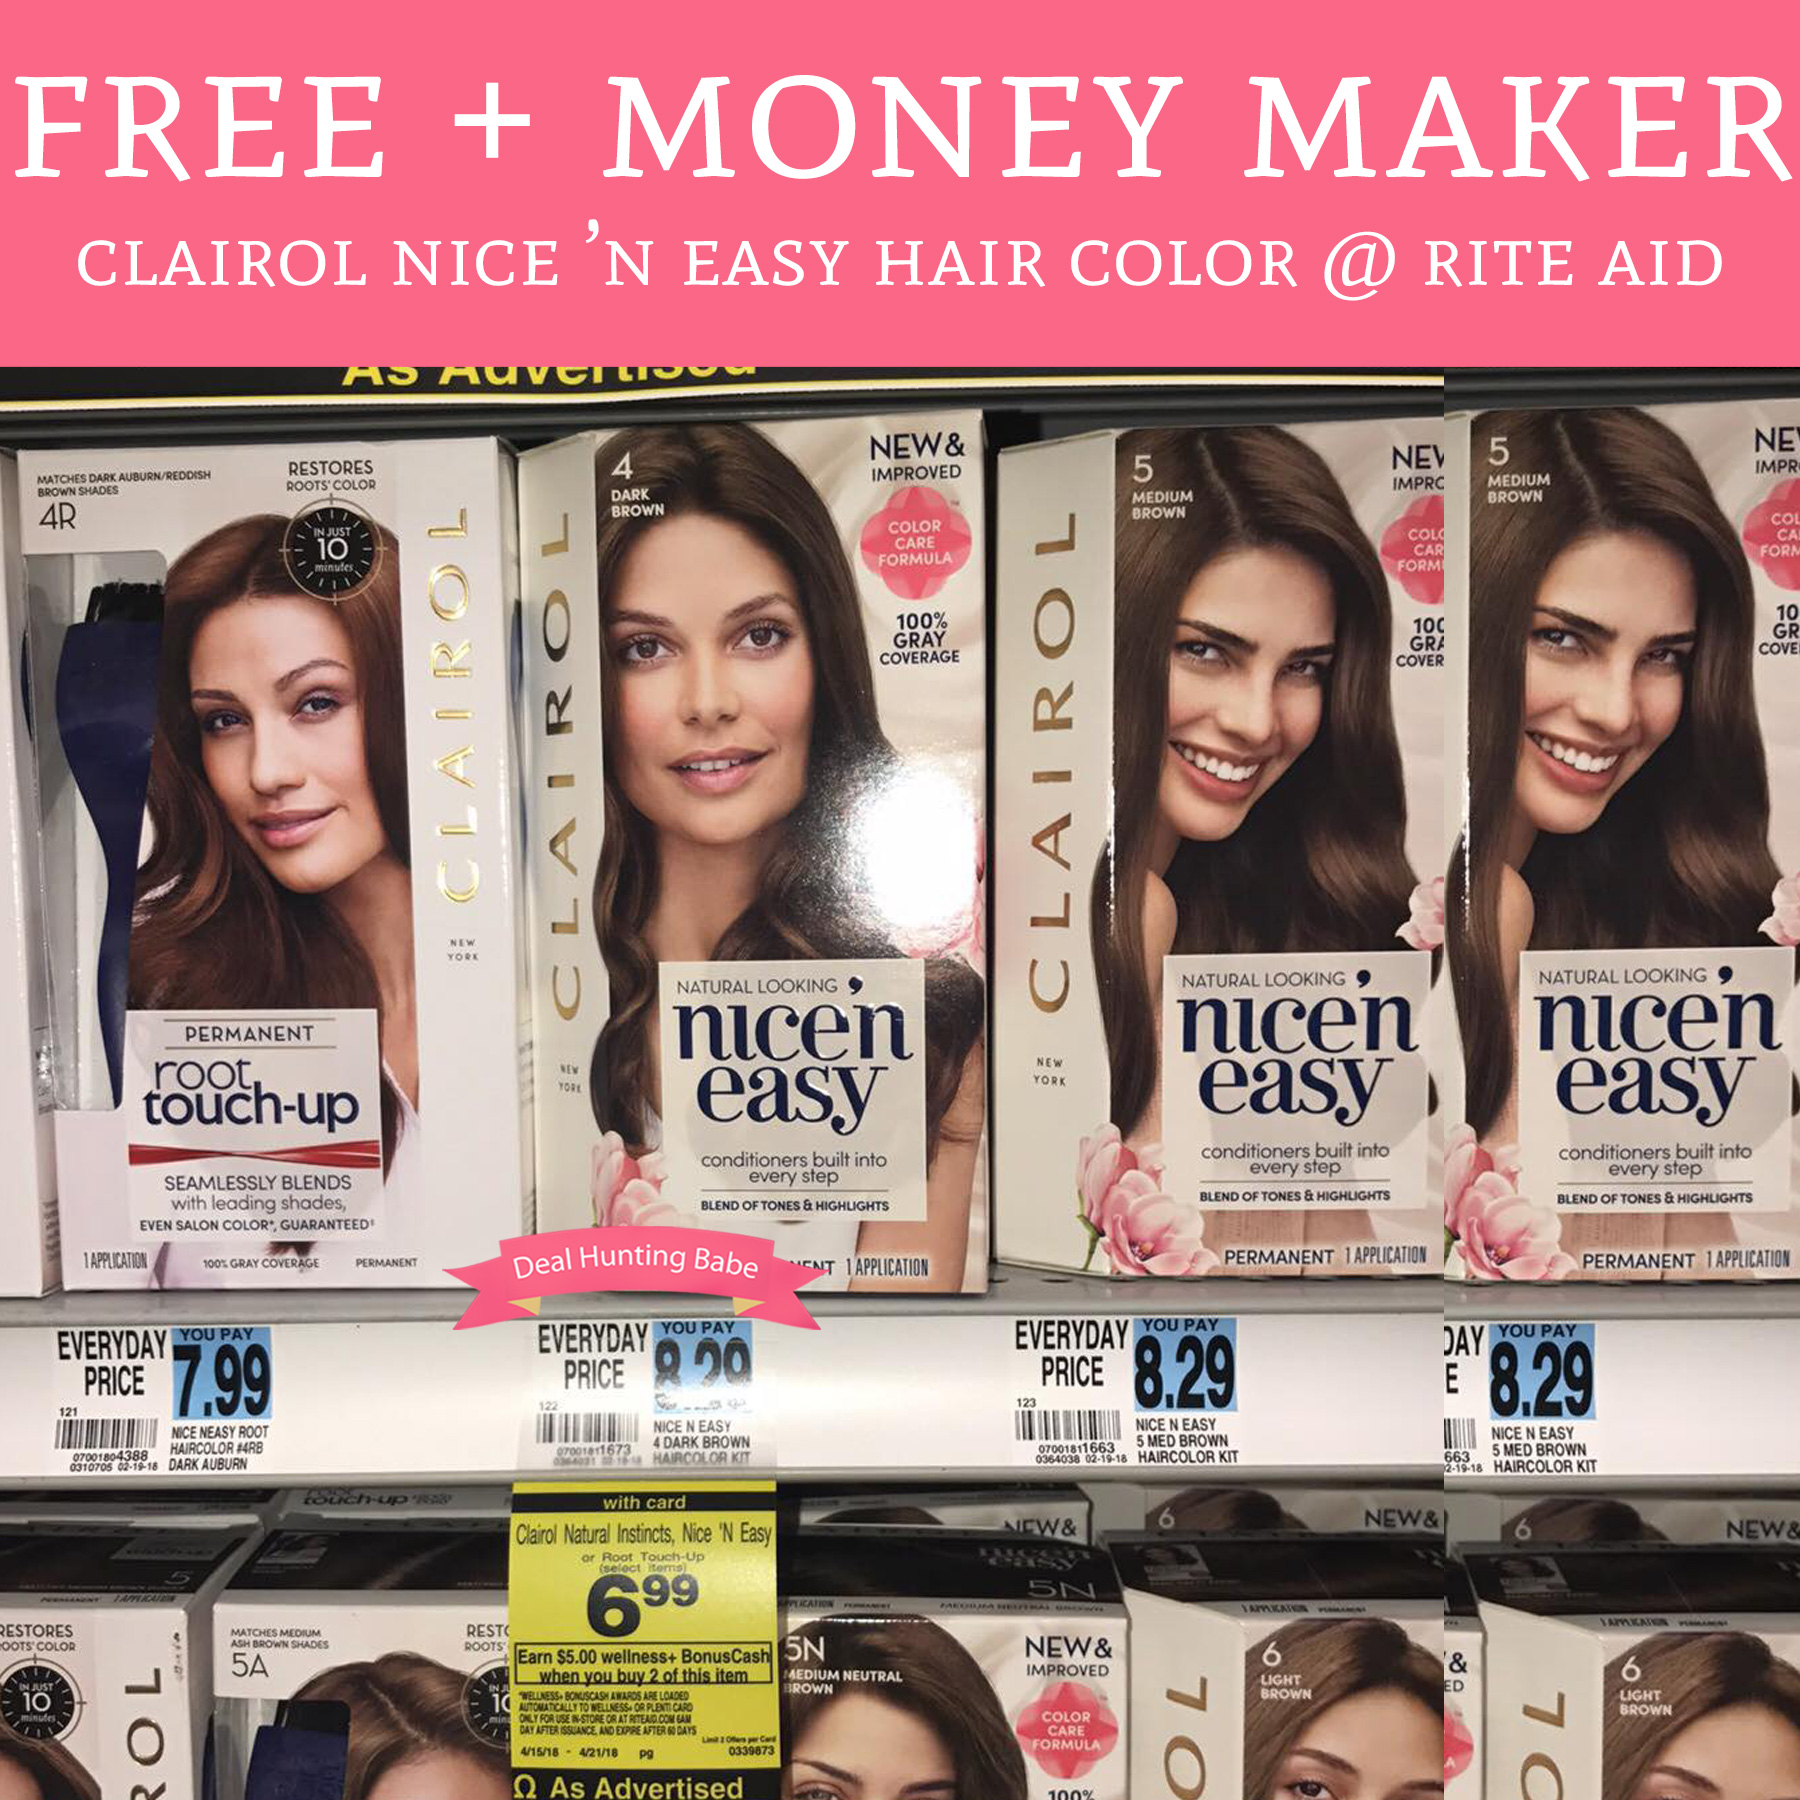 Free Money Maker Clairol Hair Color Rite Aid Deal Hunting Babe